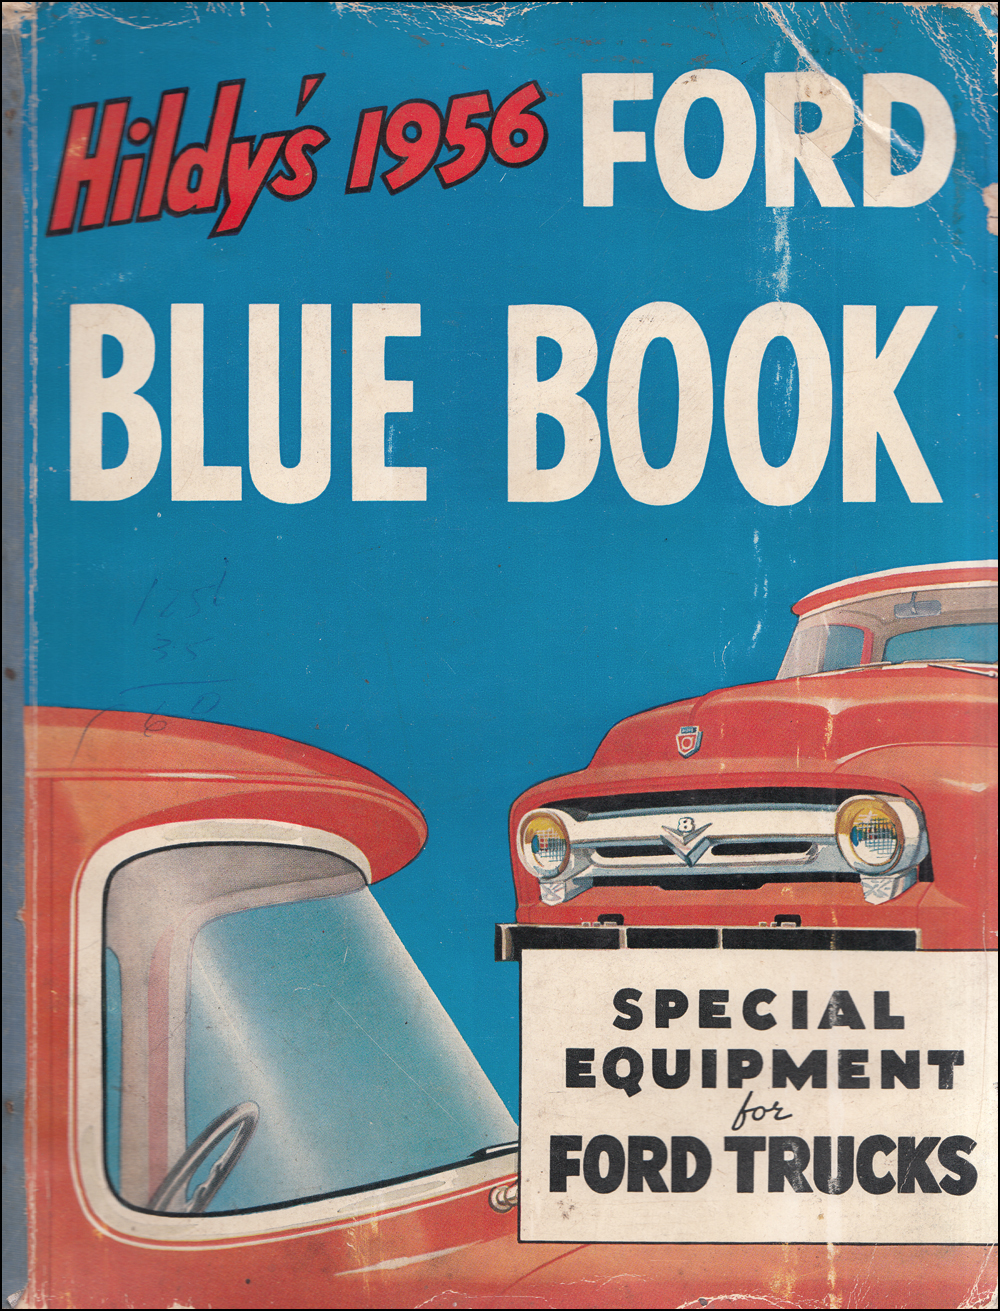 1956 Ford Truck Hildy's Blue Book Special Equipment Catalog